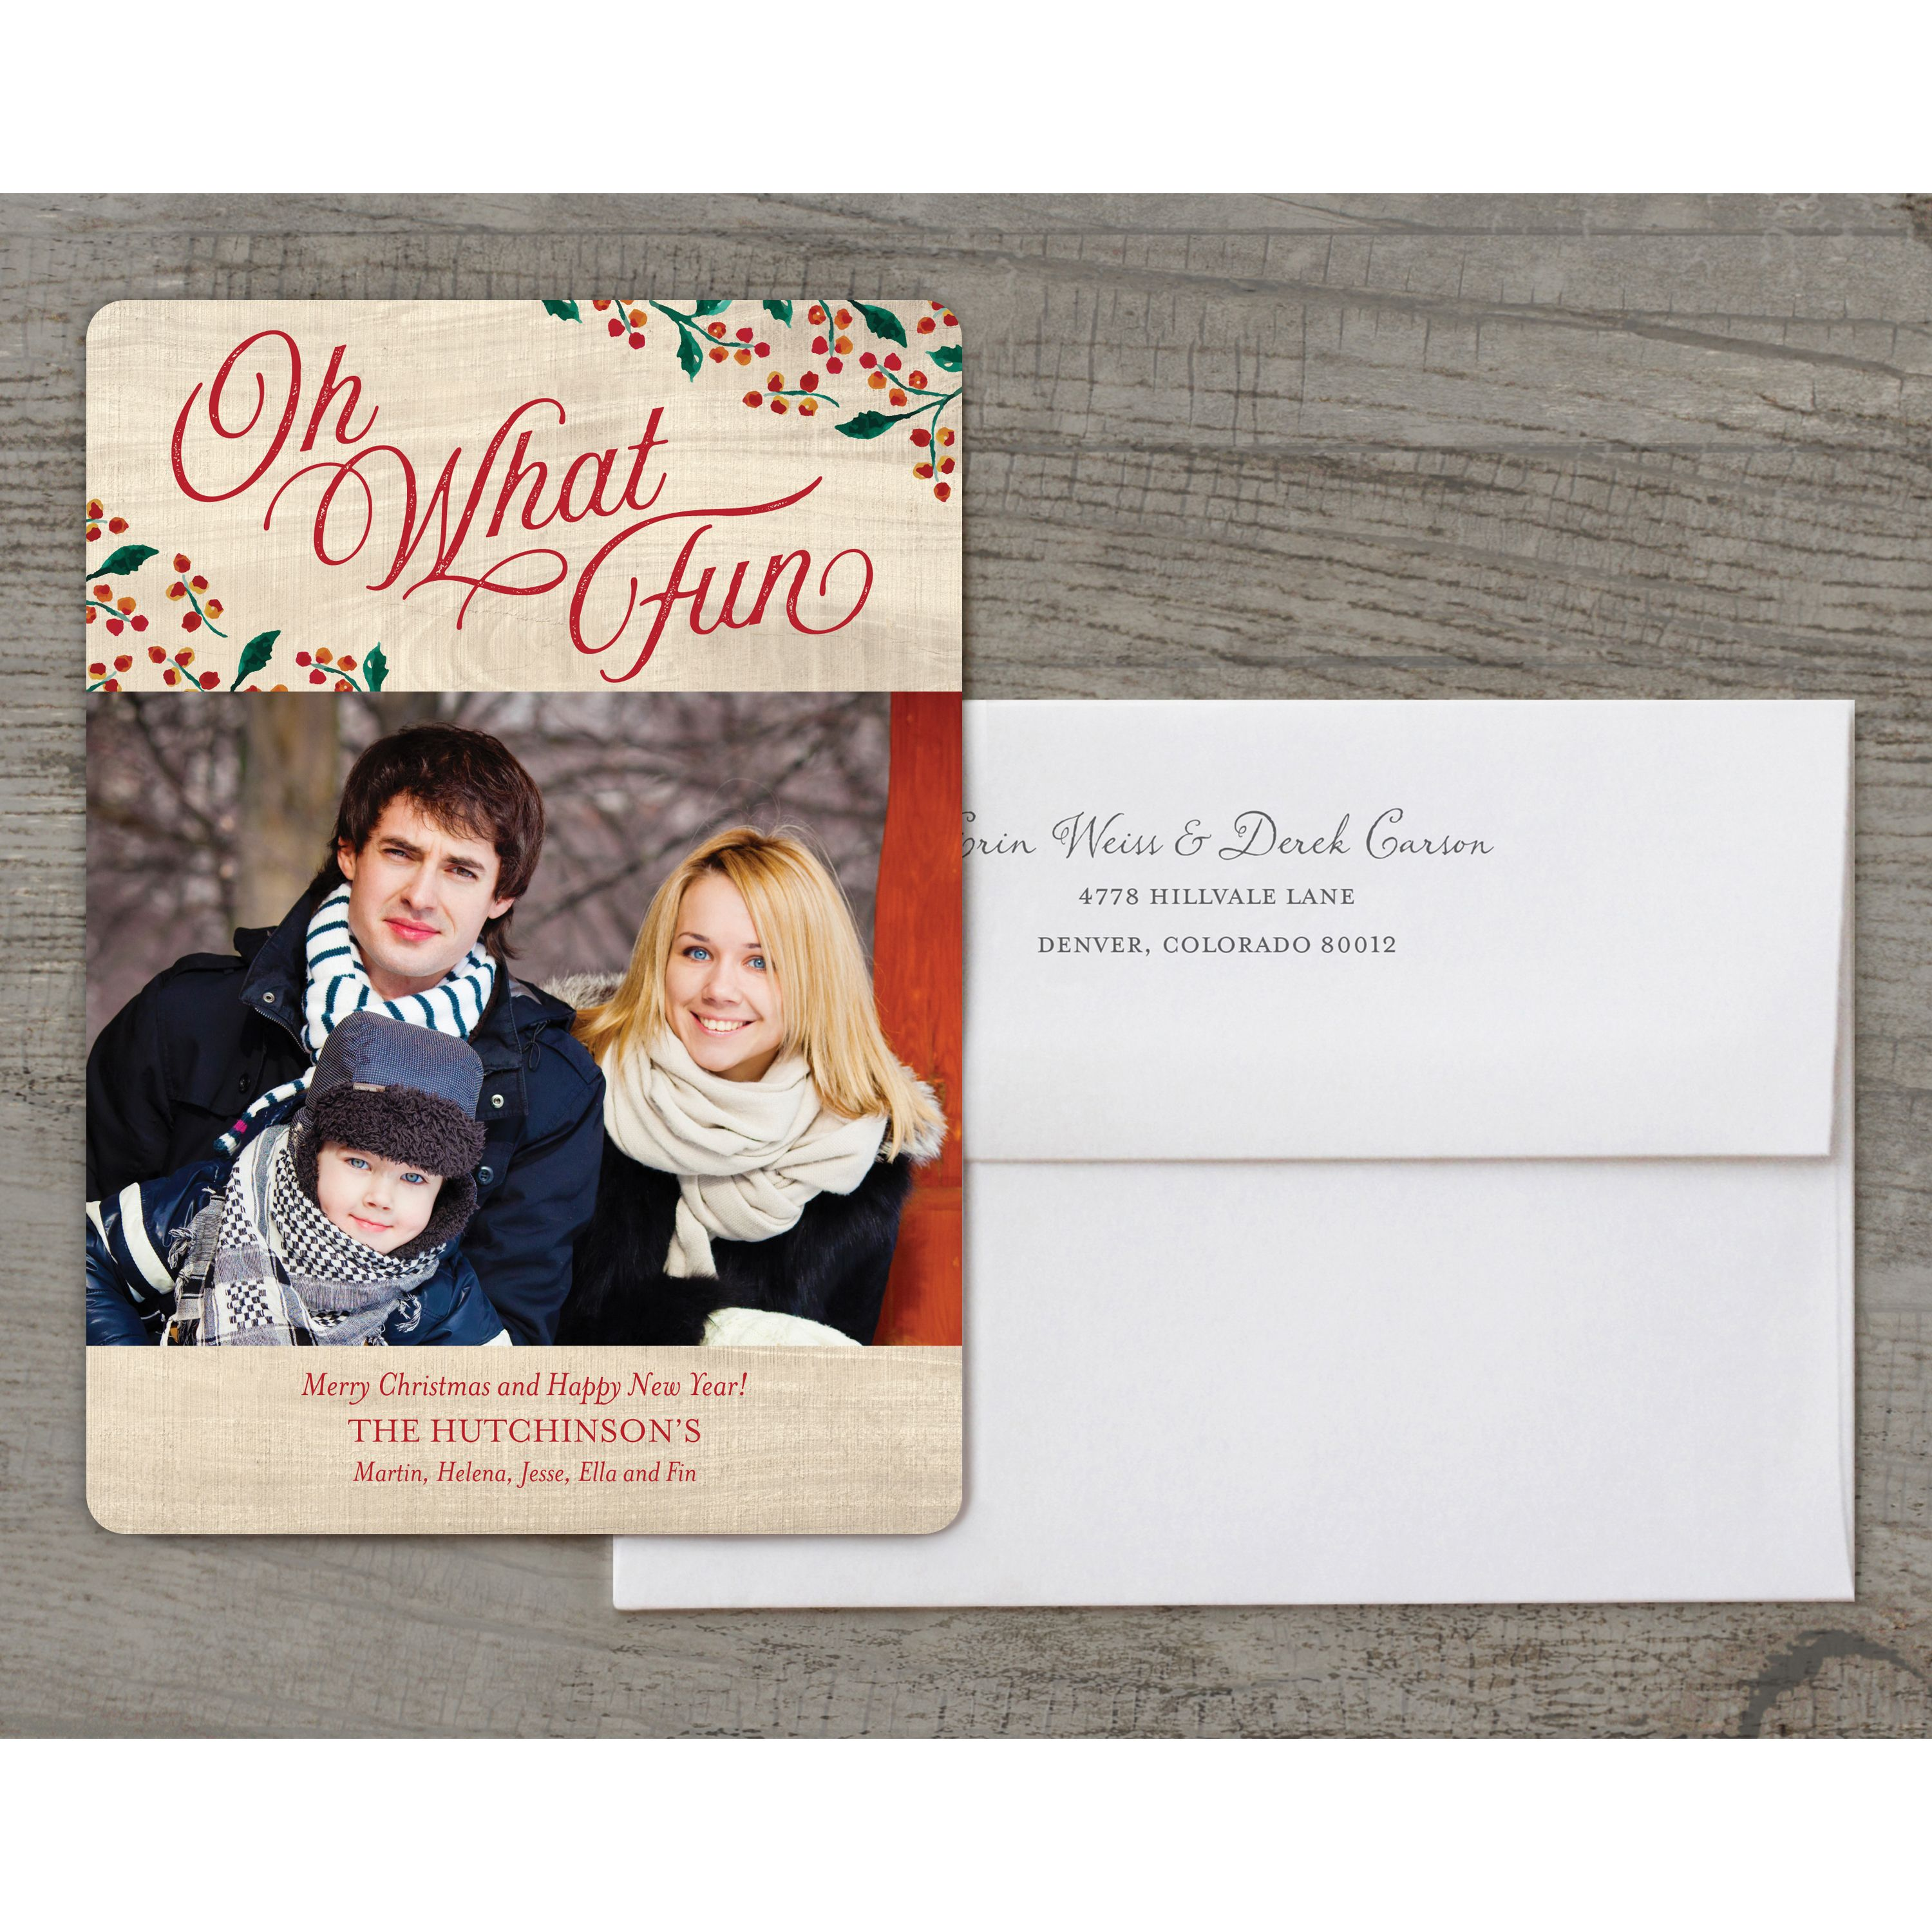 Oh What Fun - Deluxe 5x7 Personalized Holiday Christmas Card